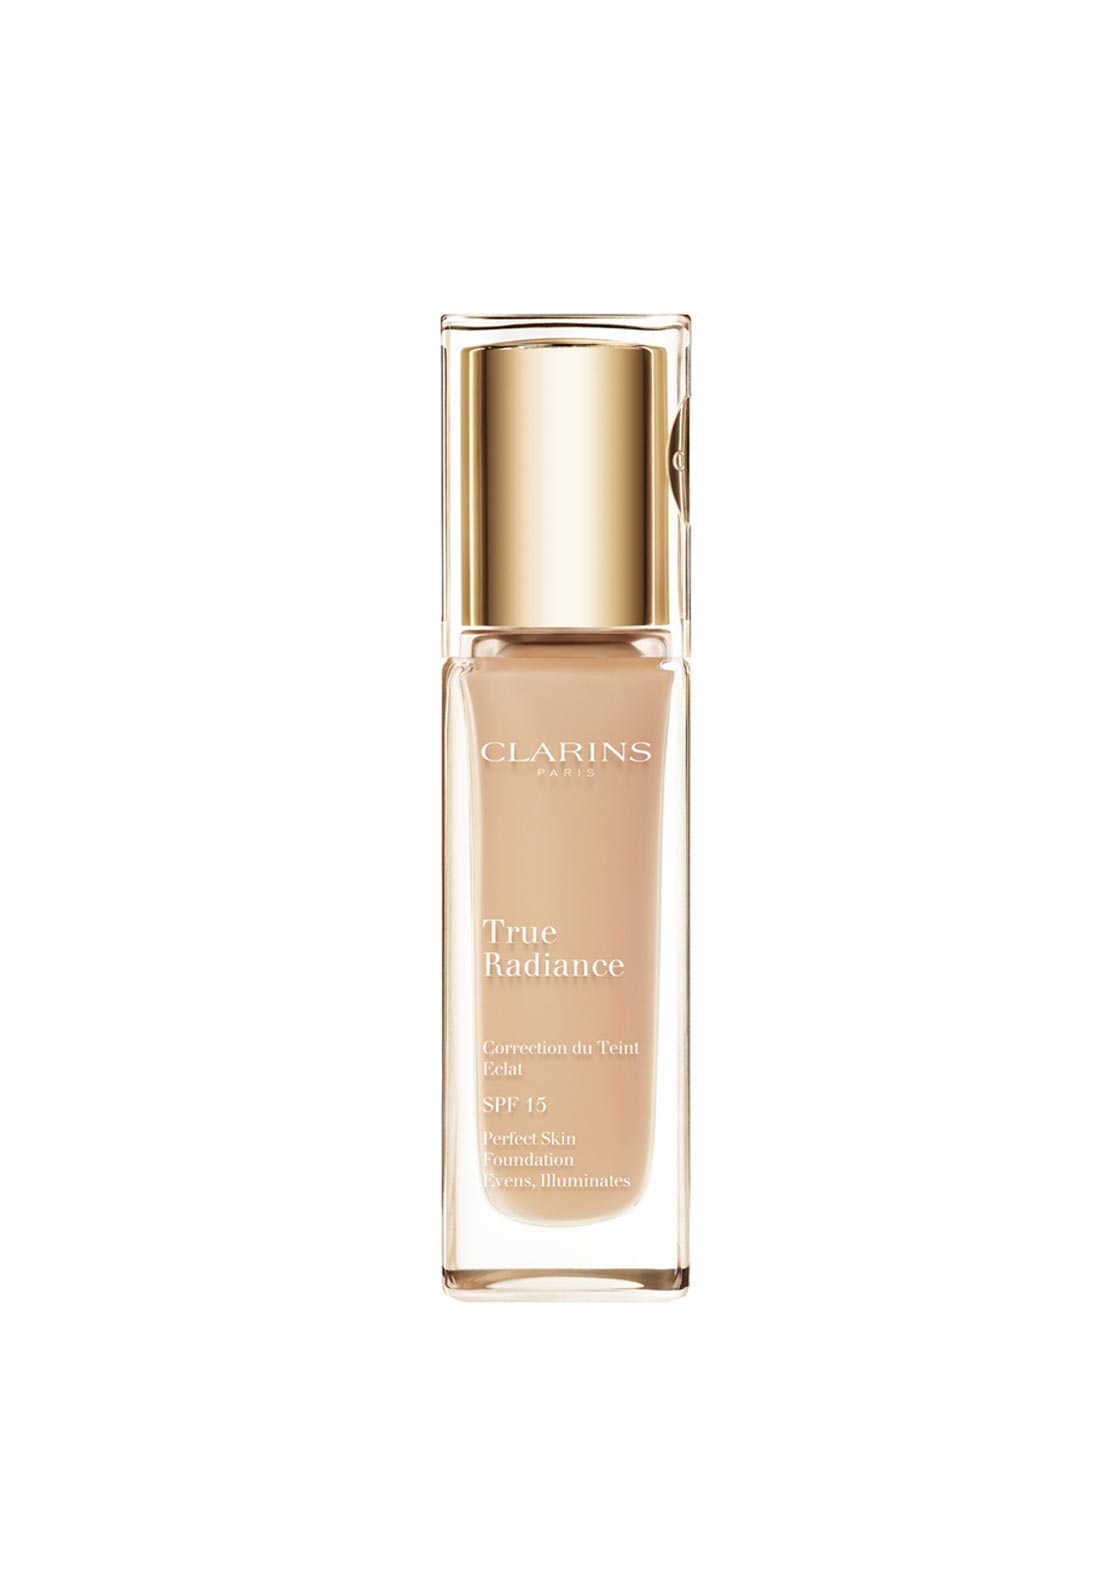 Clarins SPF15 True Radiance Foundation 105 Nude, 30ml